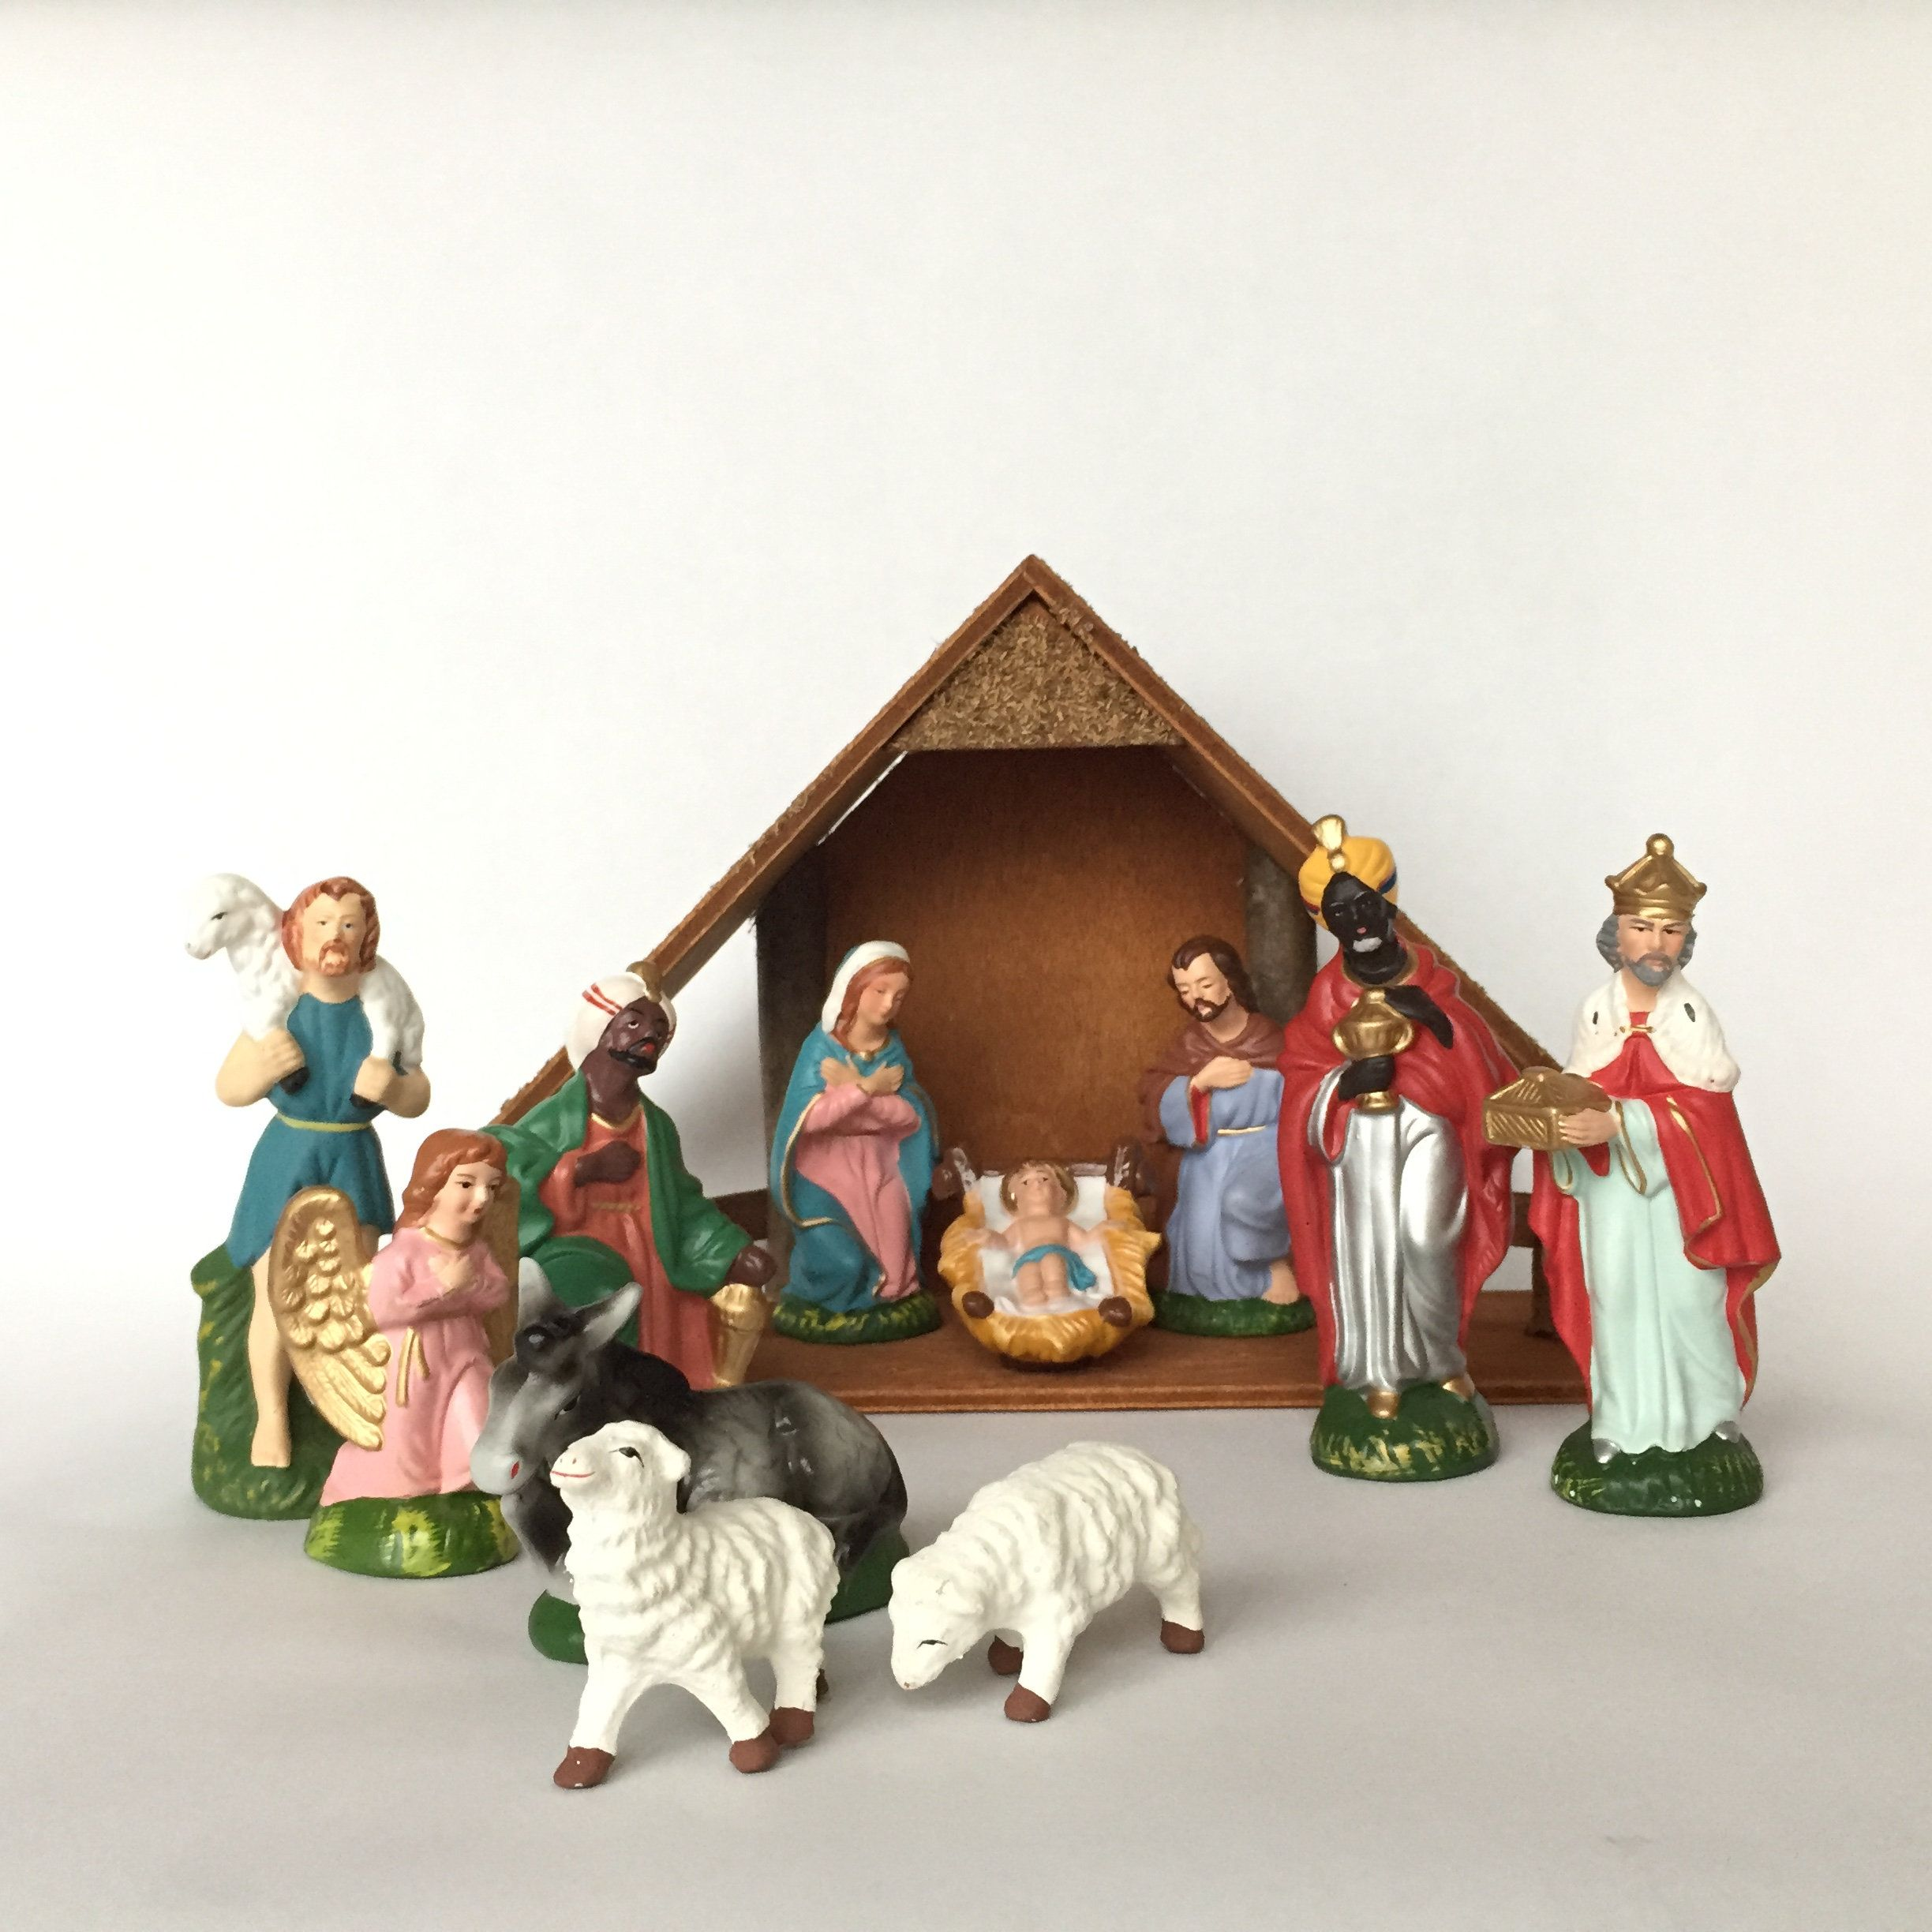 12 Piece Nativity Set Wales Japan Vintage Hand Painted Nativity Christmas Decorations Figur Vintage Christmas Decorations Nativity Set Vintage Christmas Lights